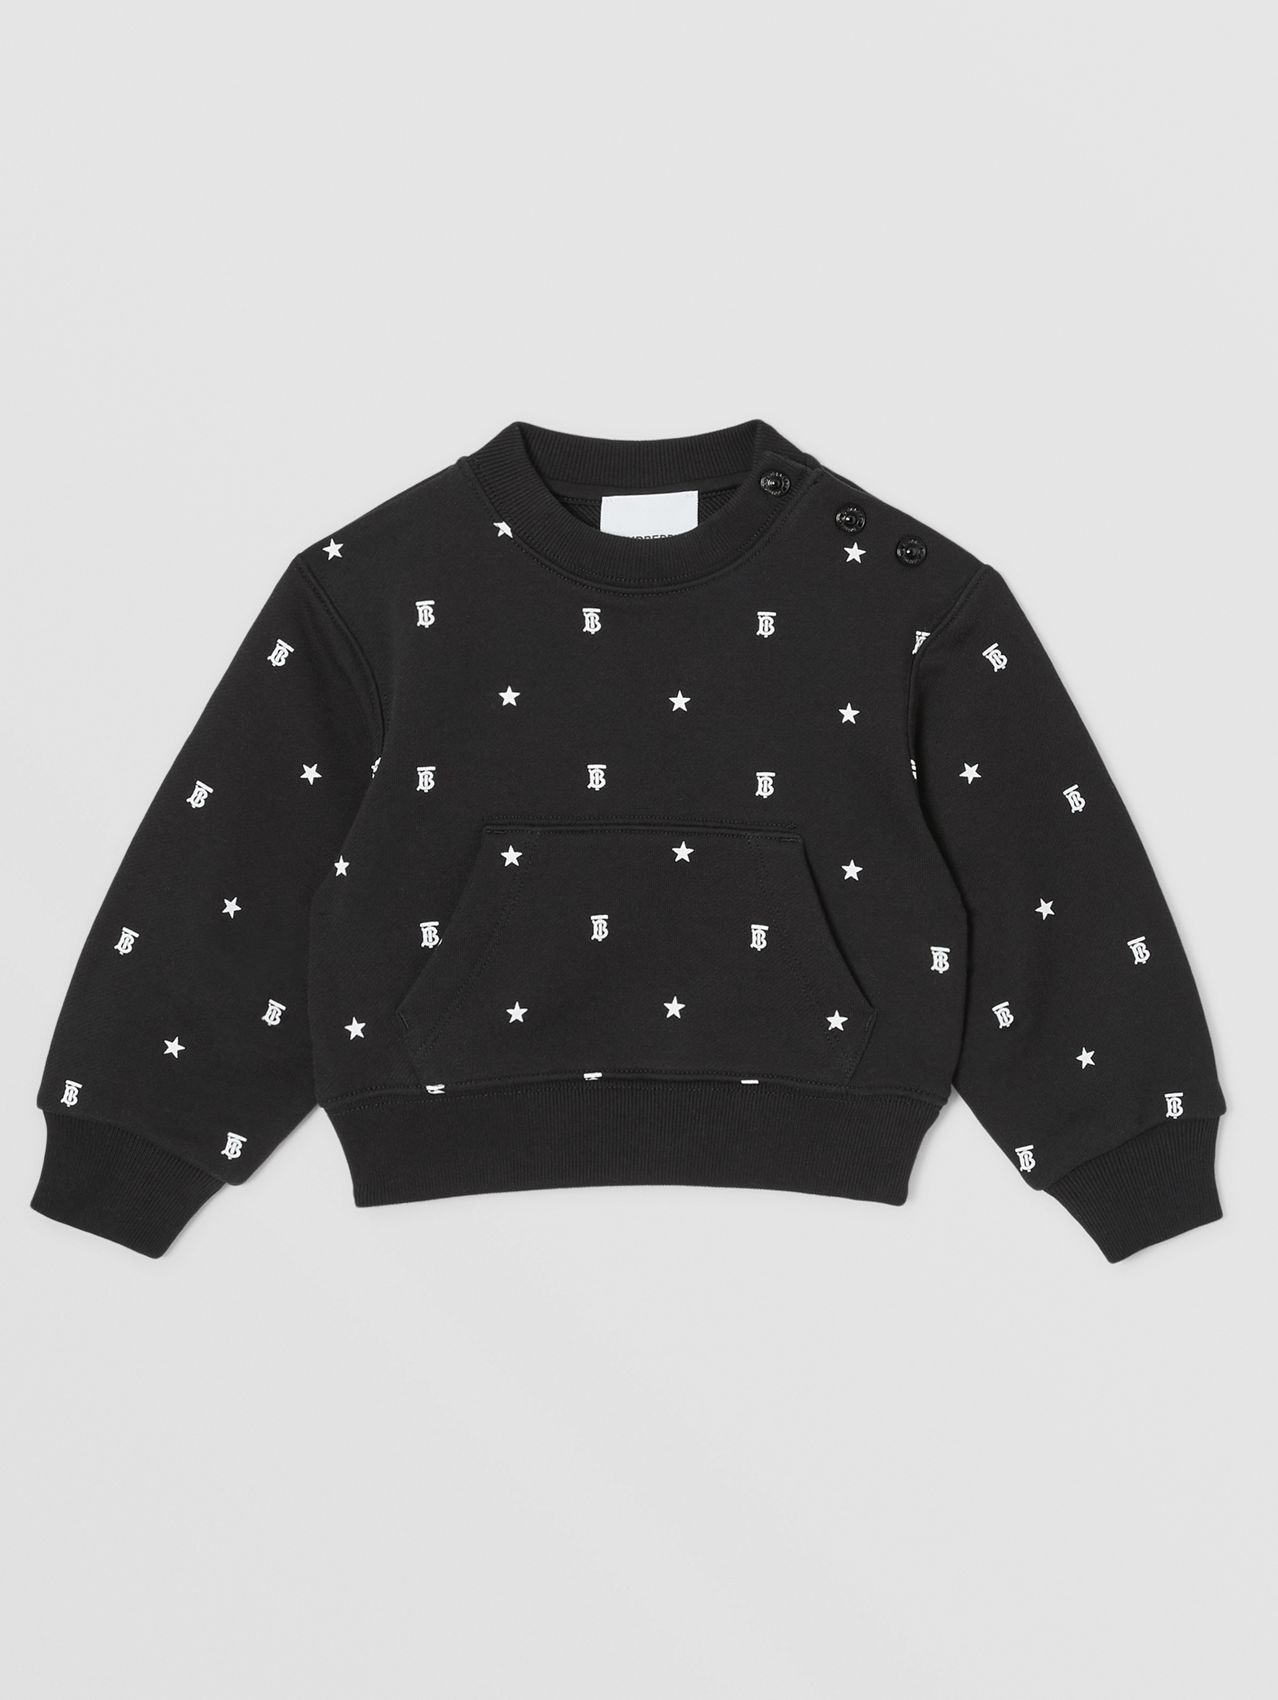 Star and Monogram Motif Cotton Sweatshirt in Black